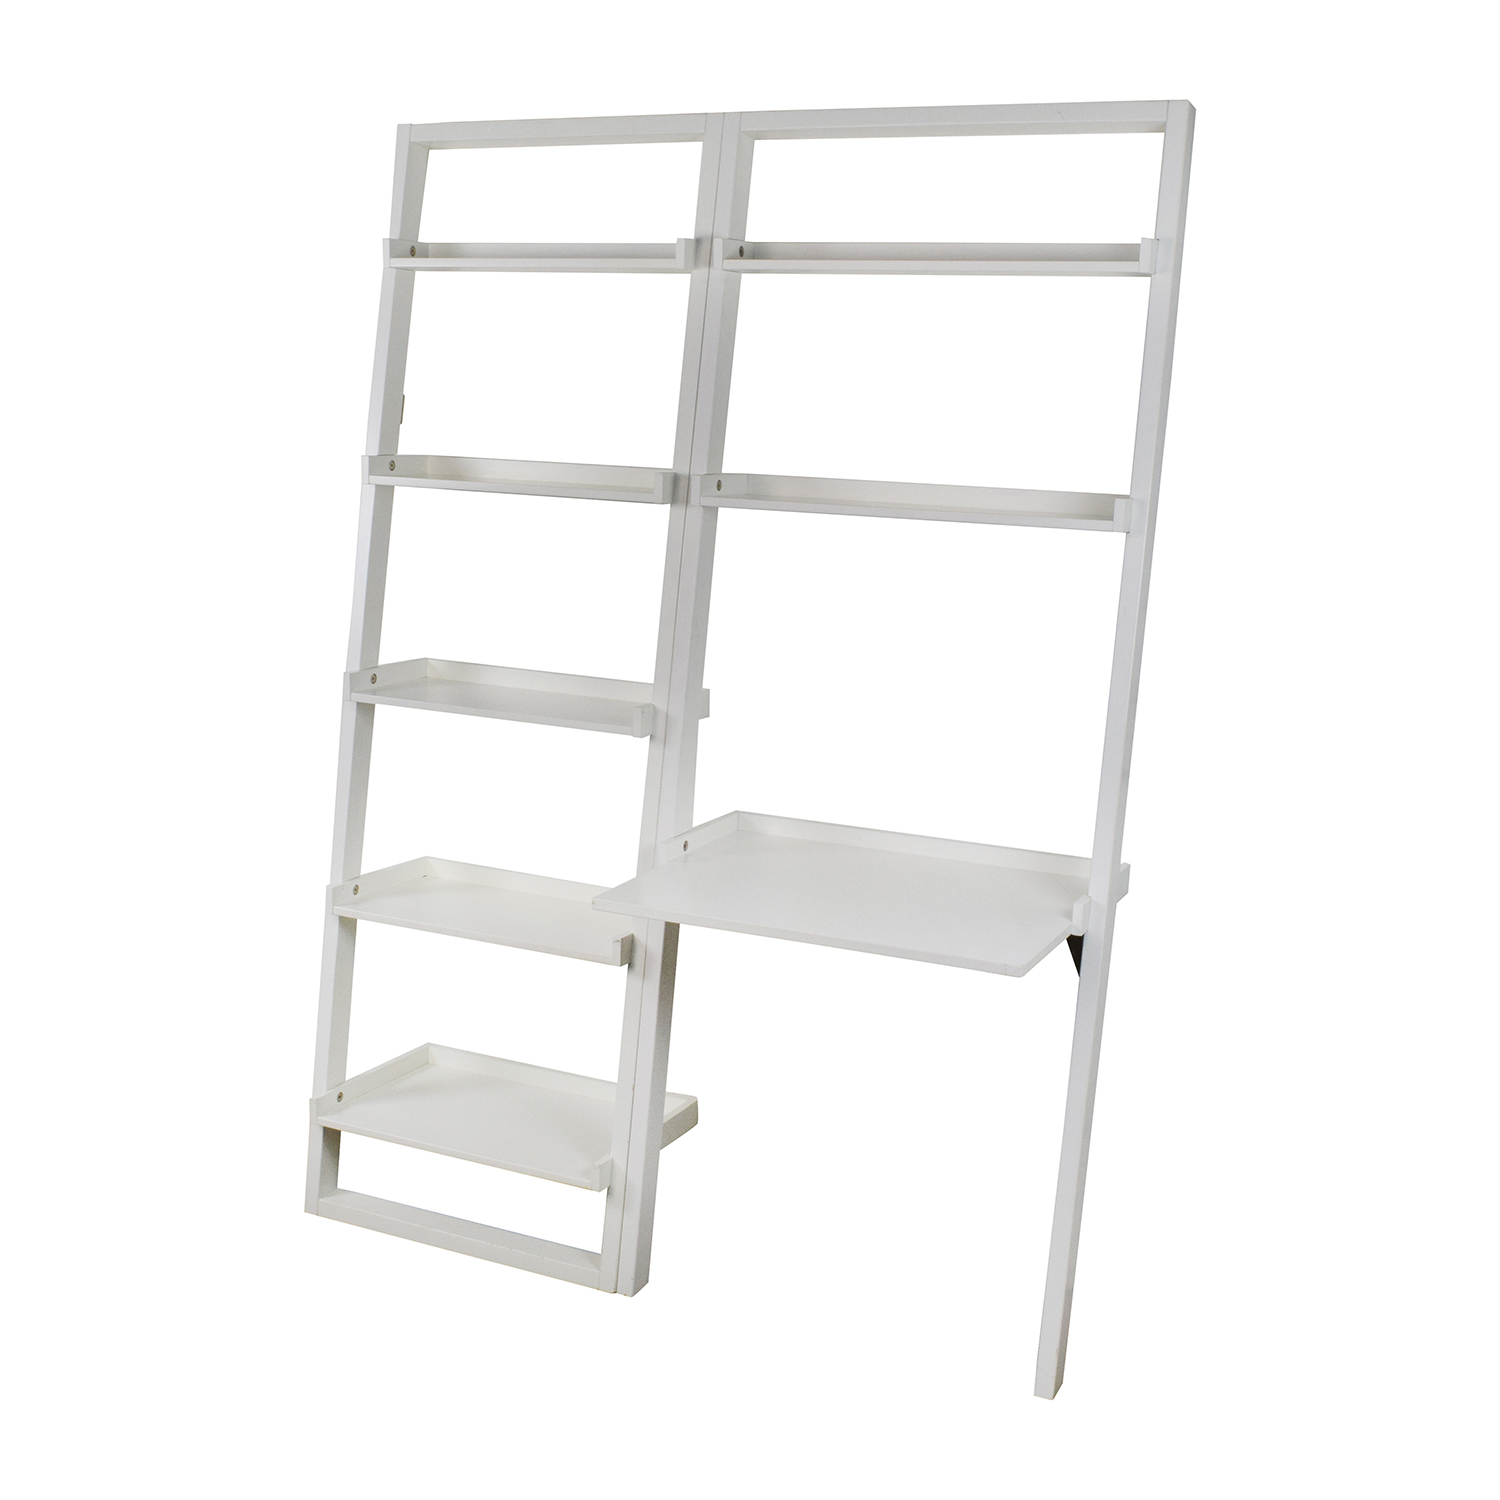 Crate and Barrel Leaning Bookcase and Desk